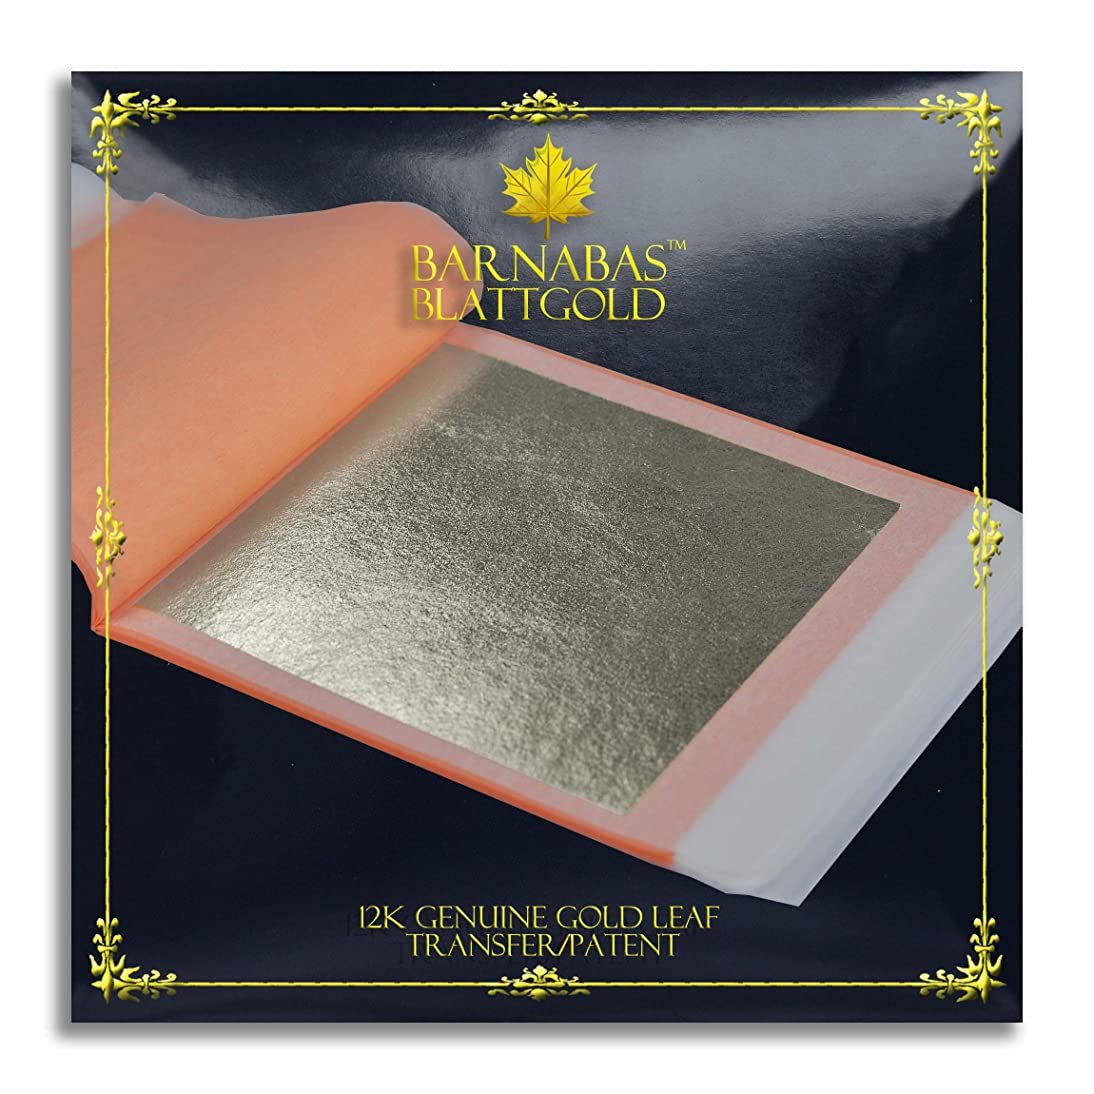 Genuine Gold Leaf Sheets 12k - by Barnabas Blattgold - 3.4 inches - 25 Sheets Booklet - Transfer Patent Leaf